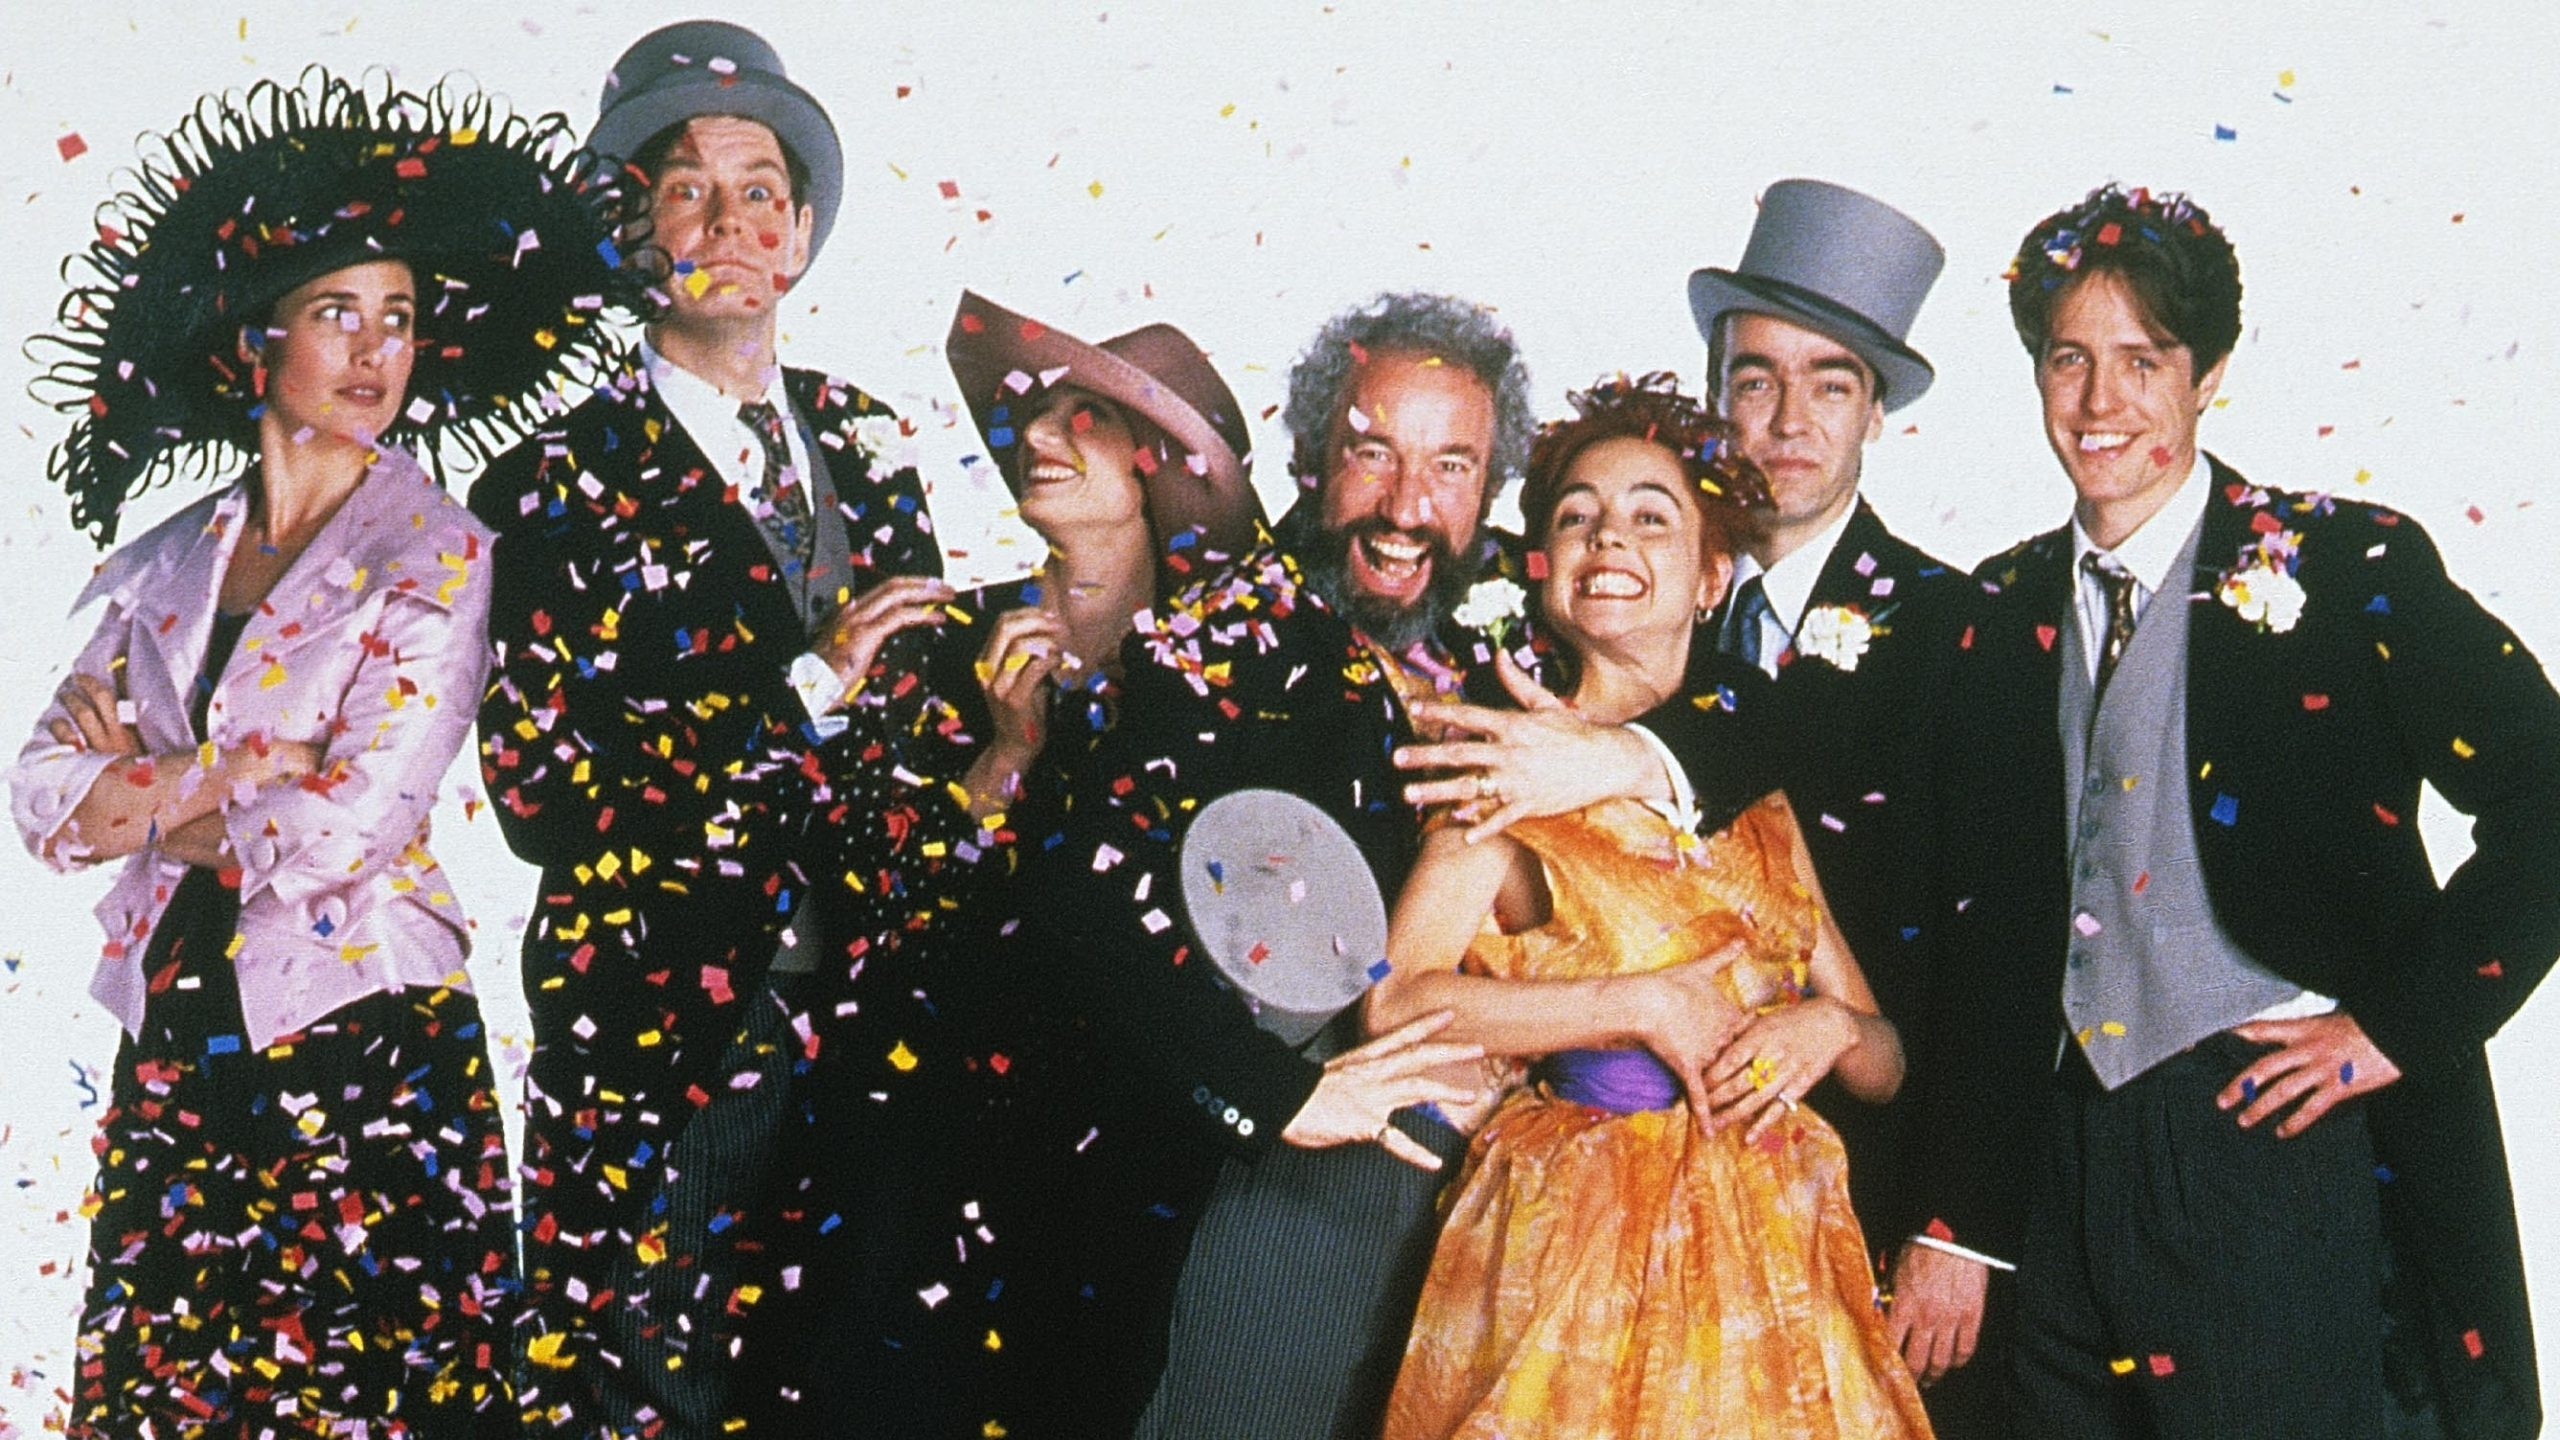 Four Weddings and a Funeral Movie Scene